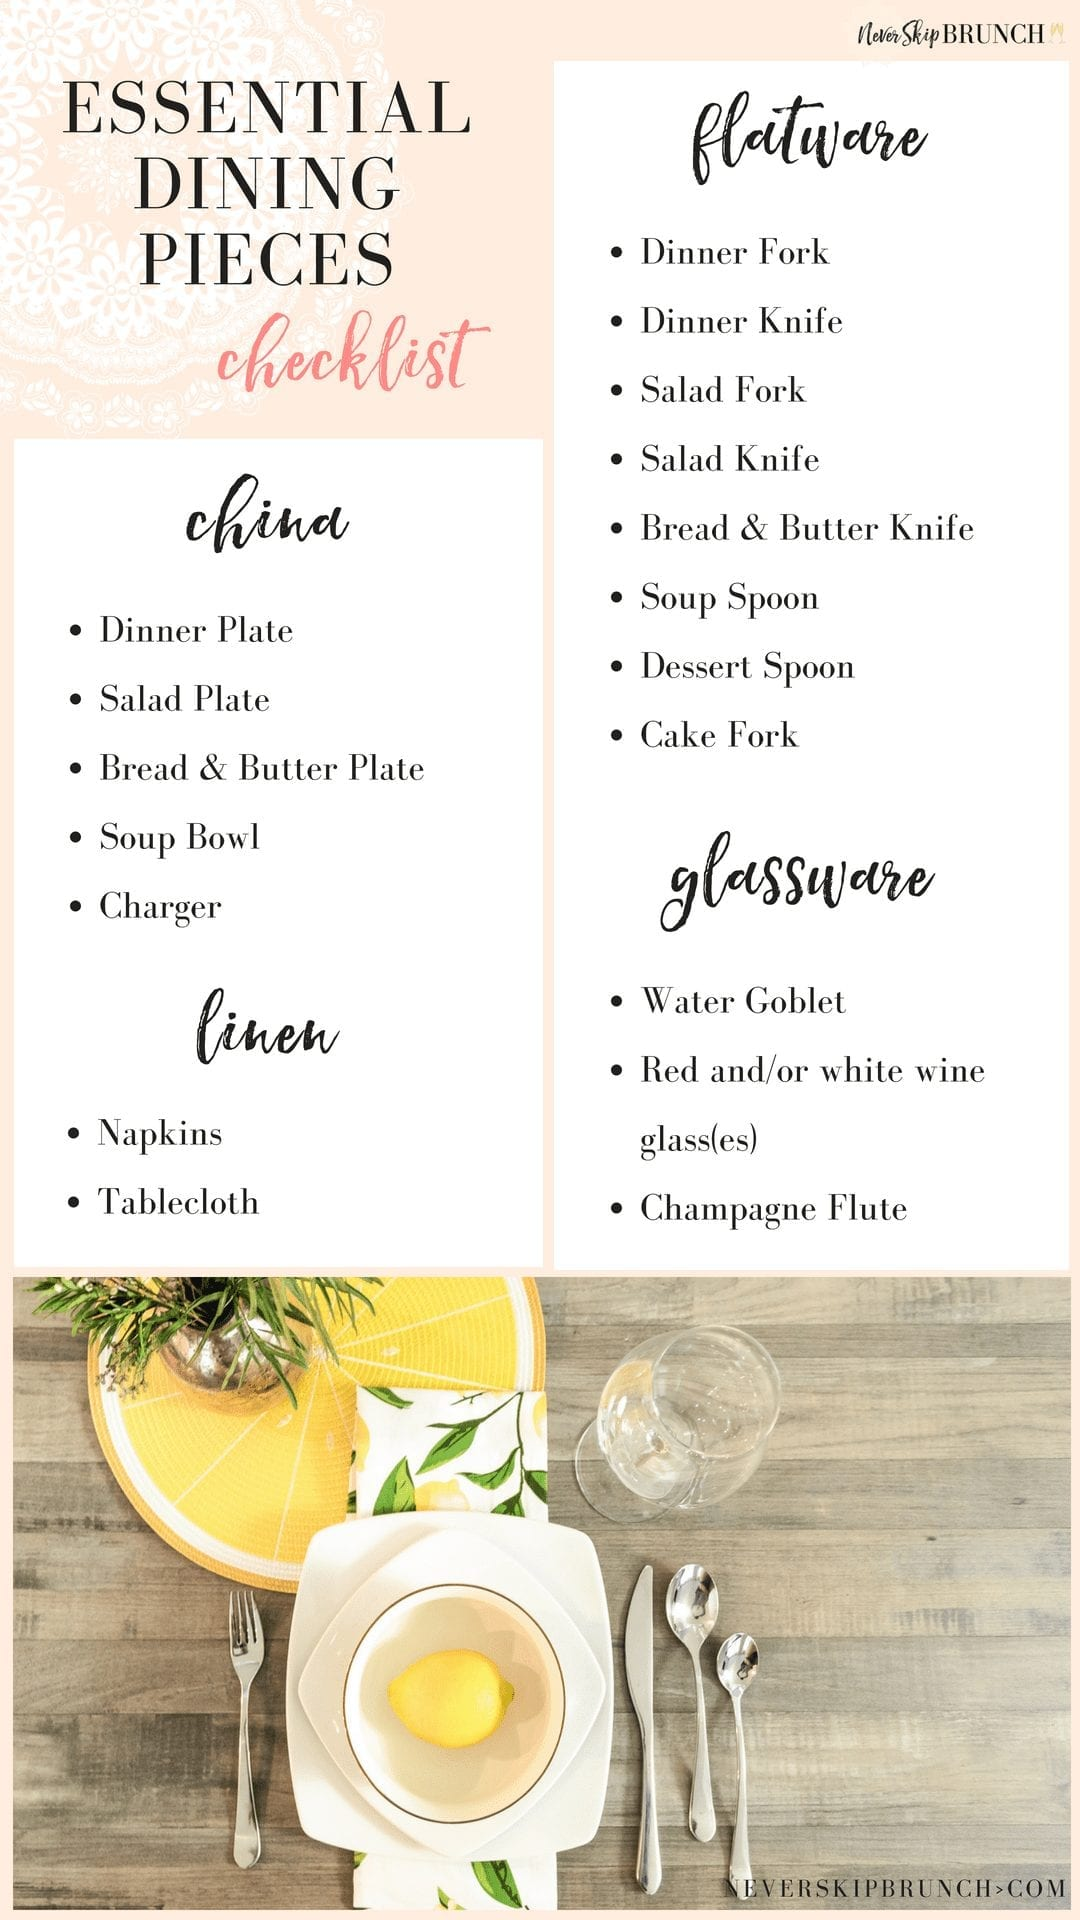 Place Setting Checklist | This tablescape checklist will give you tablescapes ideas for how to create dinner party table settings | never skip brunch by cara newhart #home #decor #neverskipbrunch